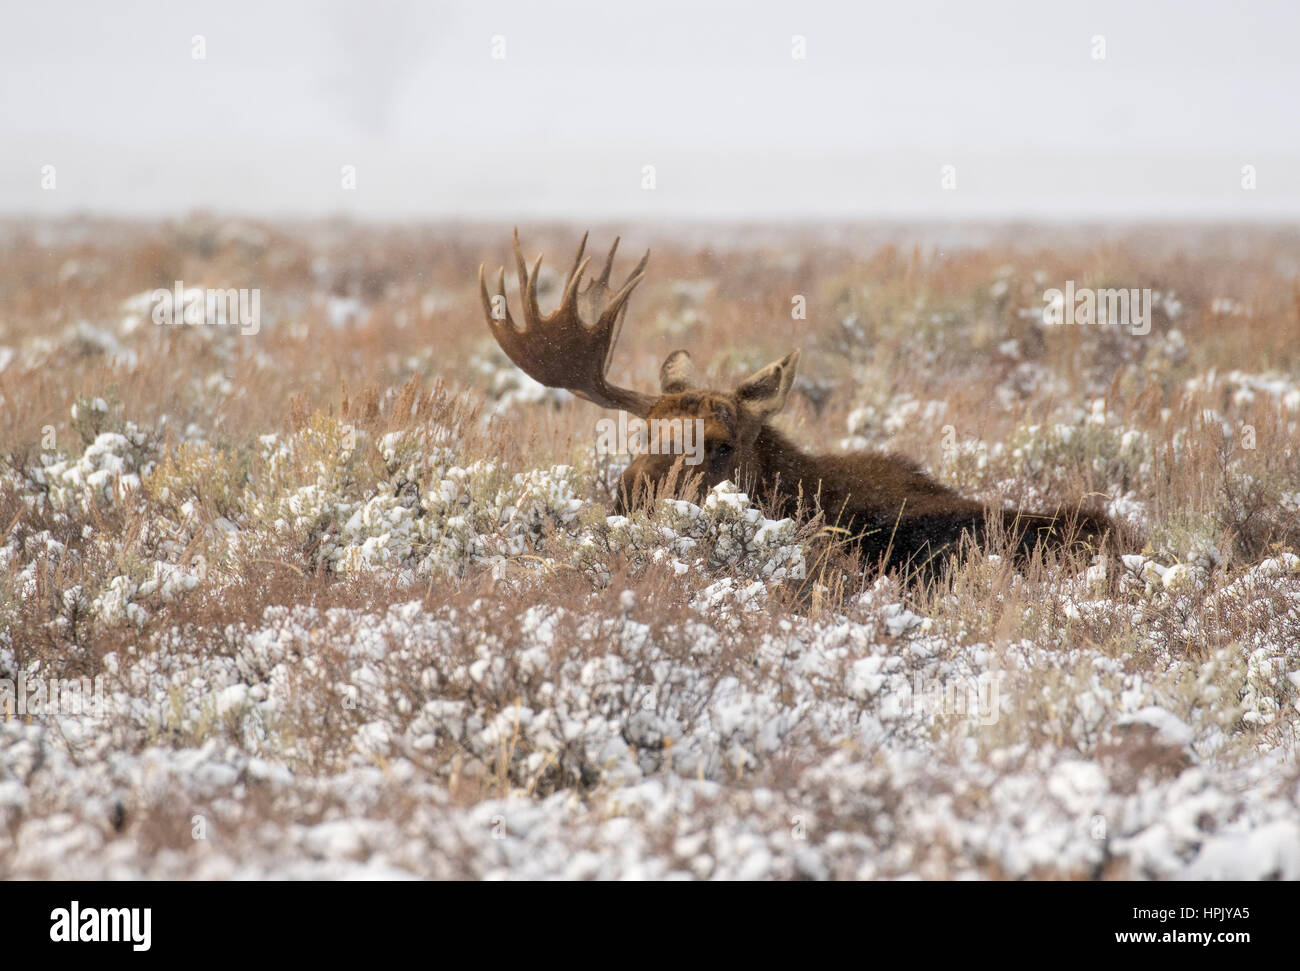 Bull moose with one antler, other antler got lost in fight during rut, ruminating in meadow of sagebrush - Stock Image